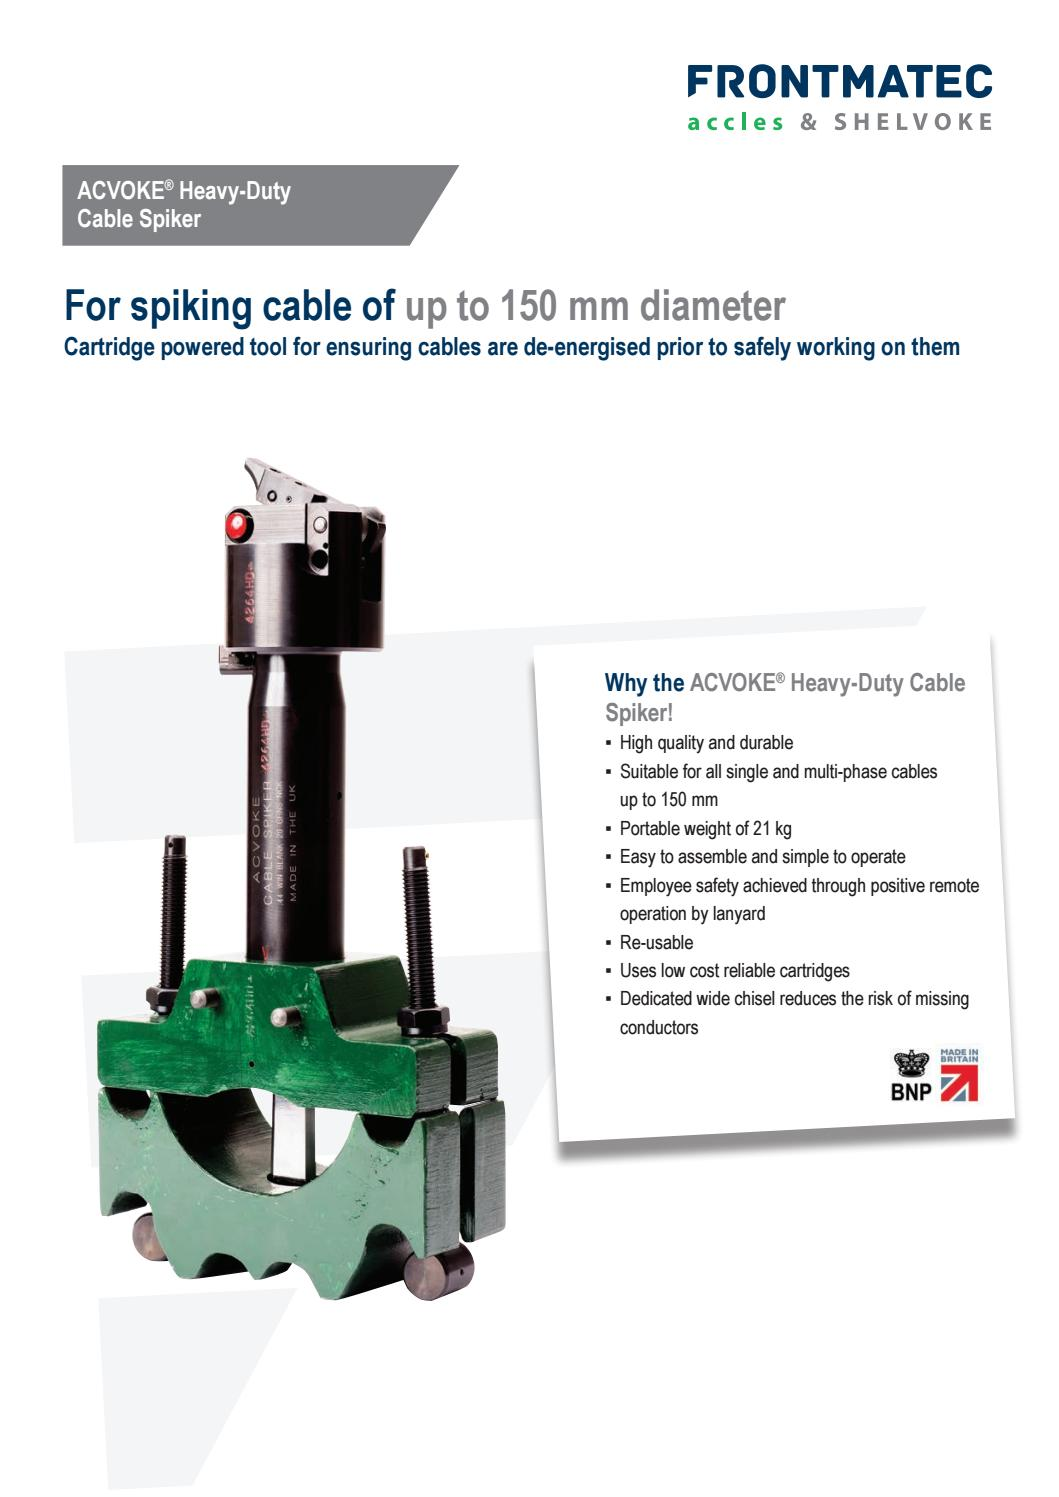 Acvoke 174 Heavy Duty Cable Spiker By Frontmatec Accles